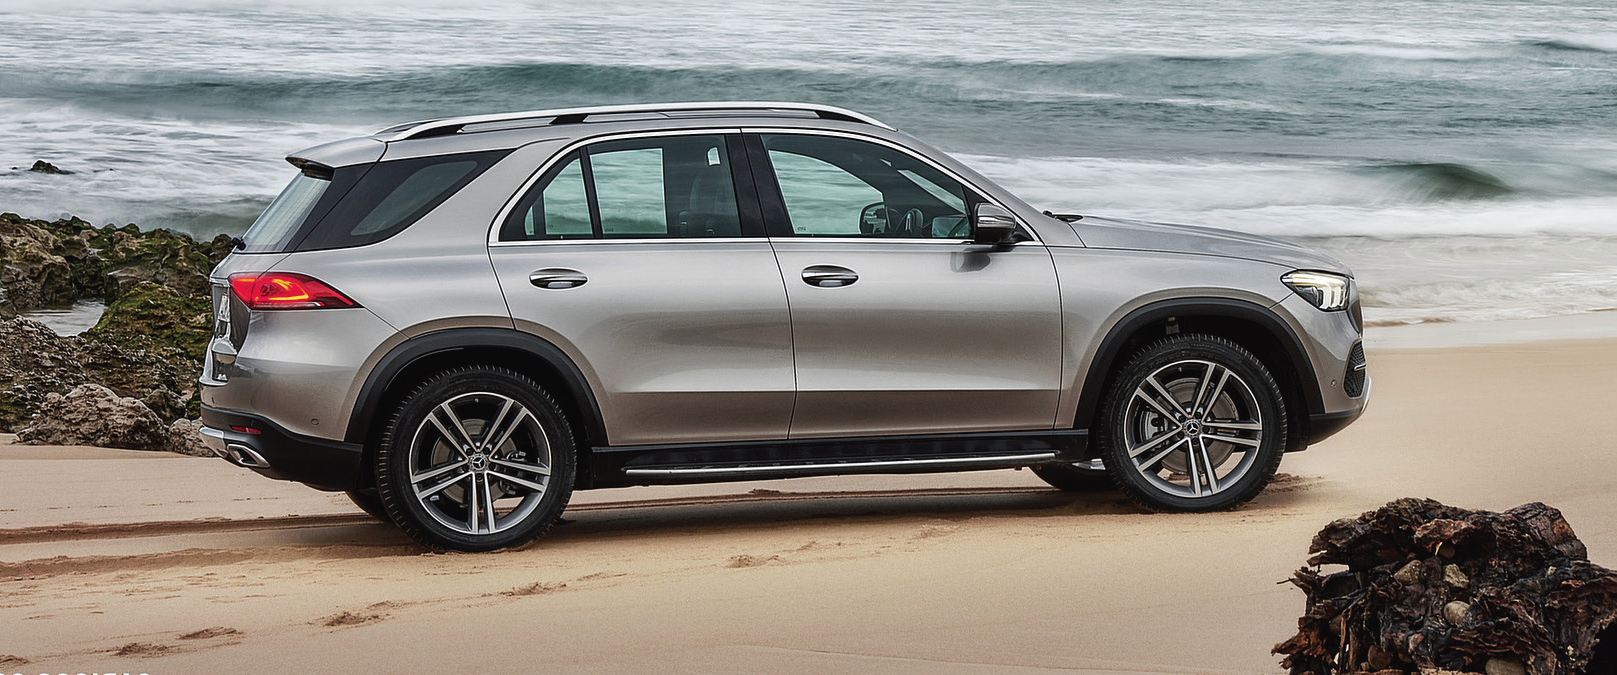 The all-new Mercedes-Benz GLE SUV. Photos supplied.